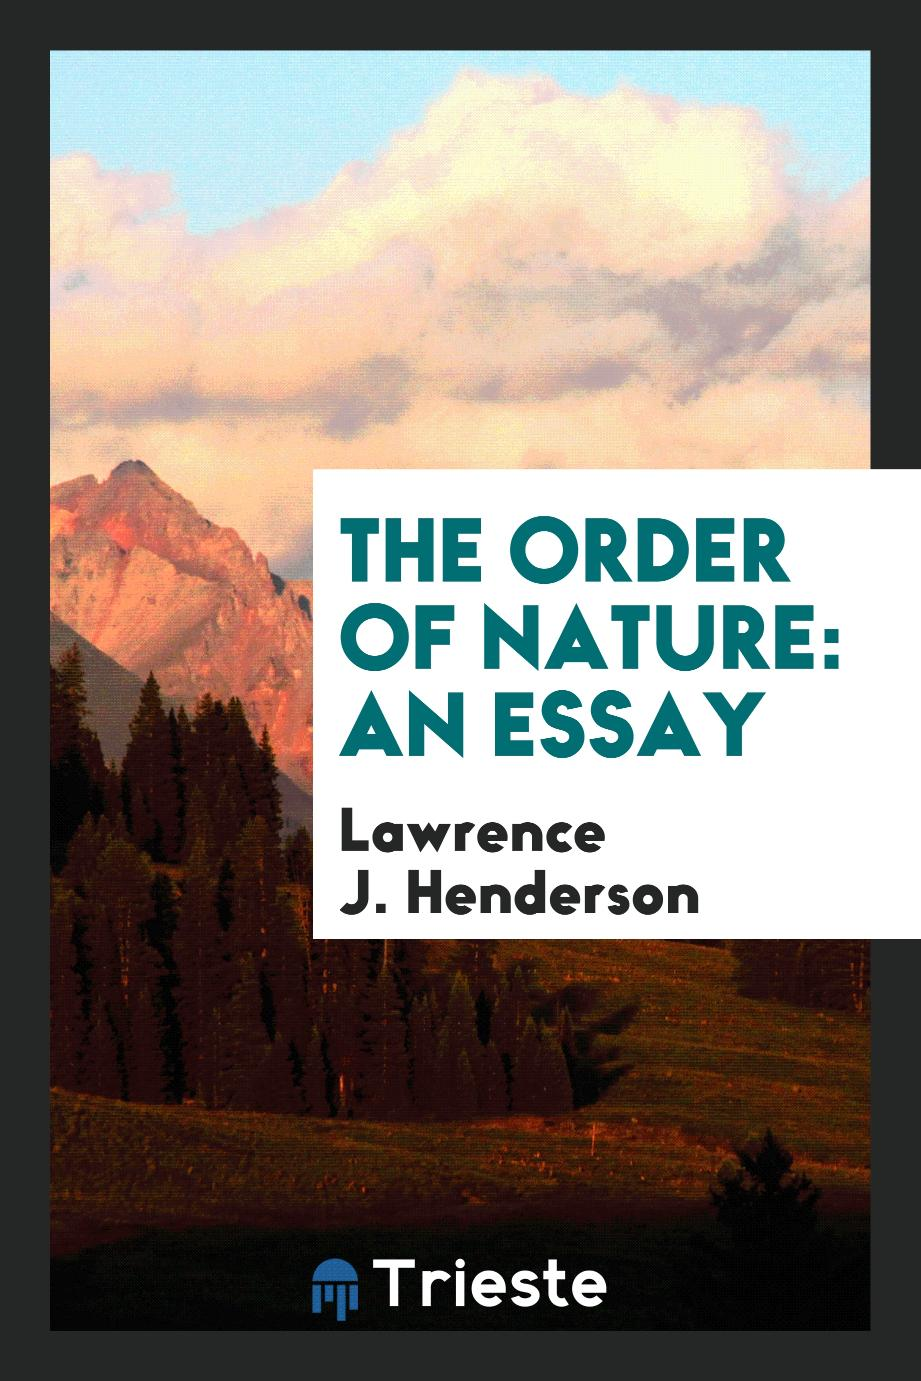 The order of nature: an essay